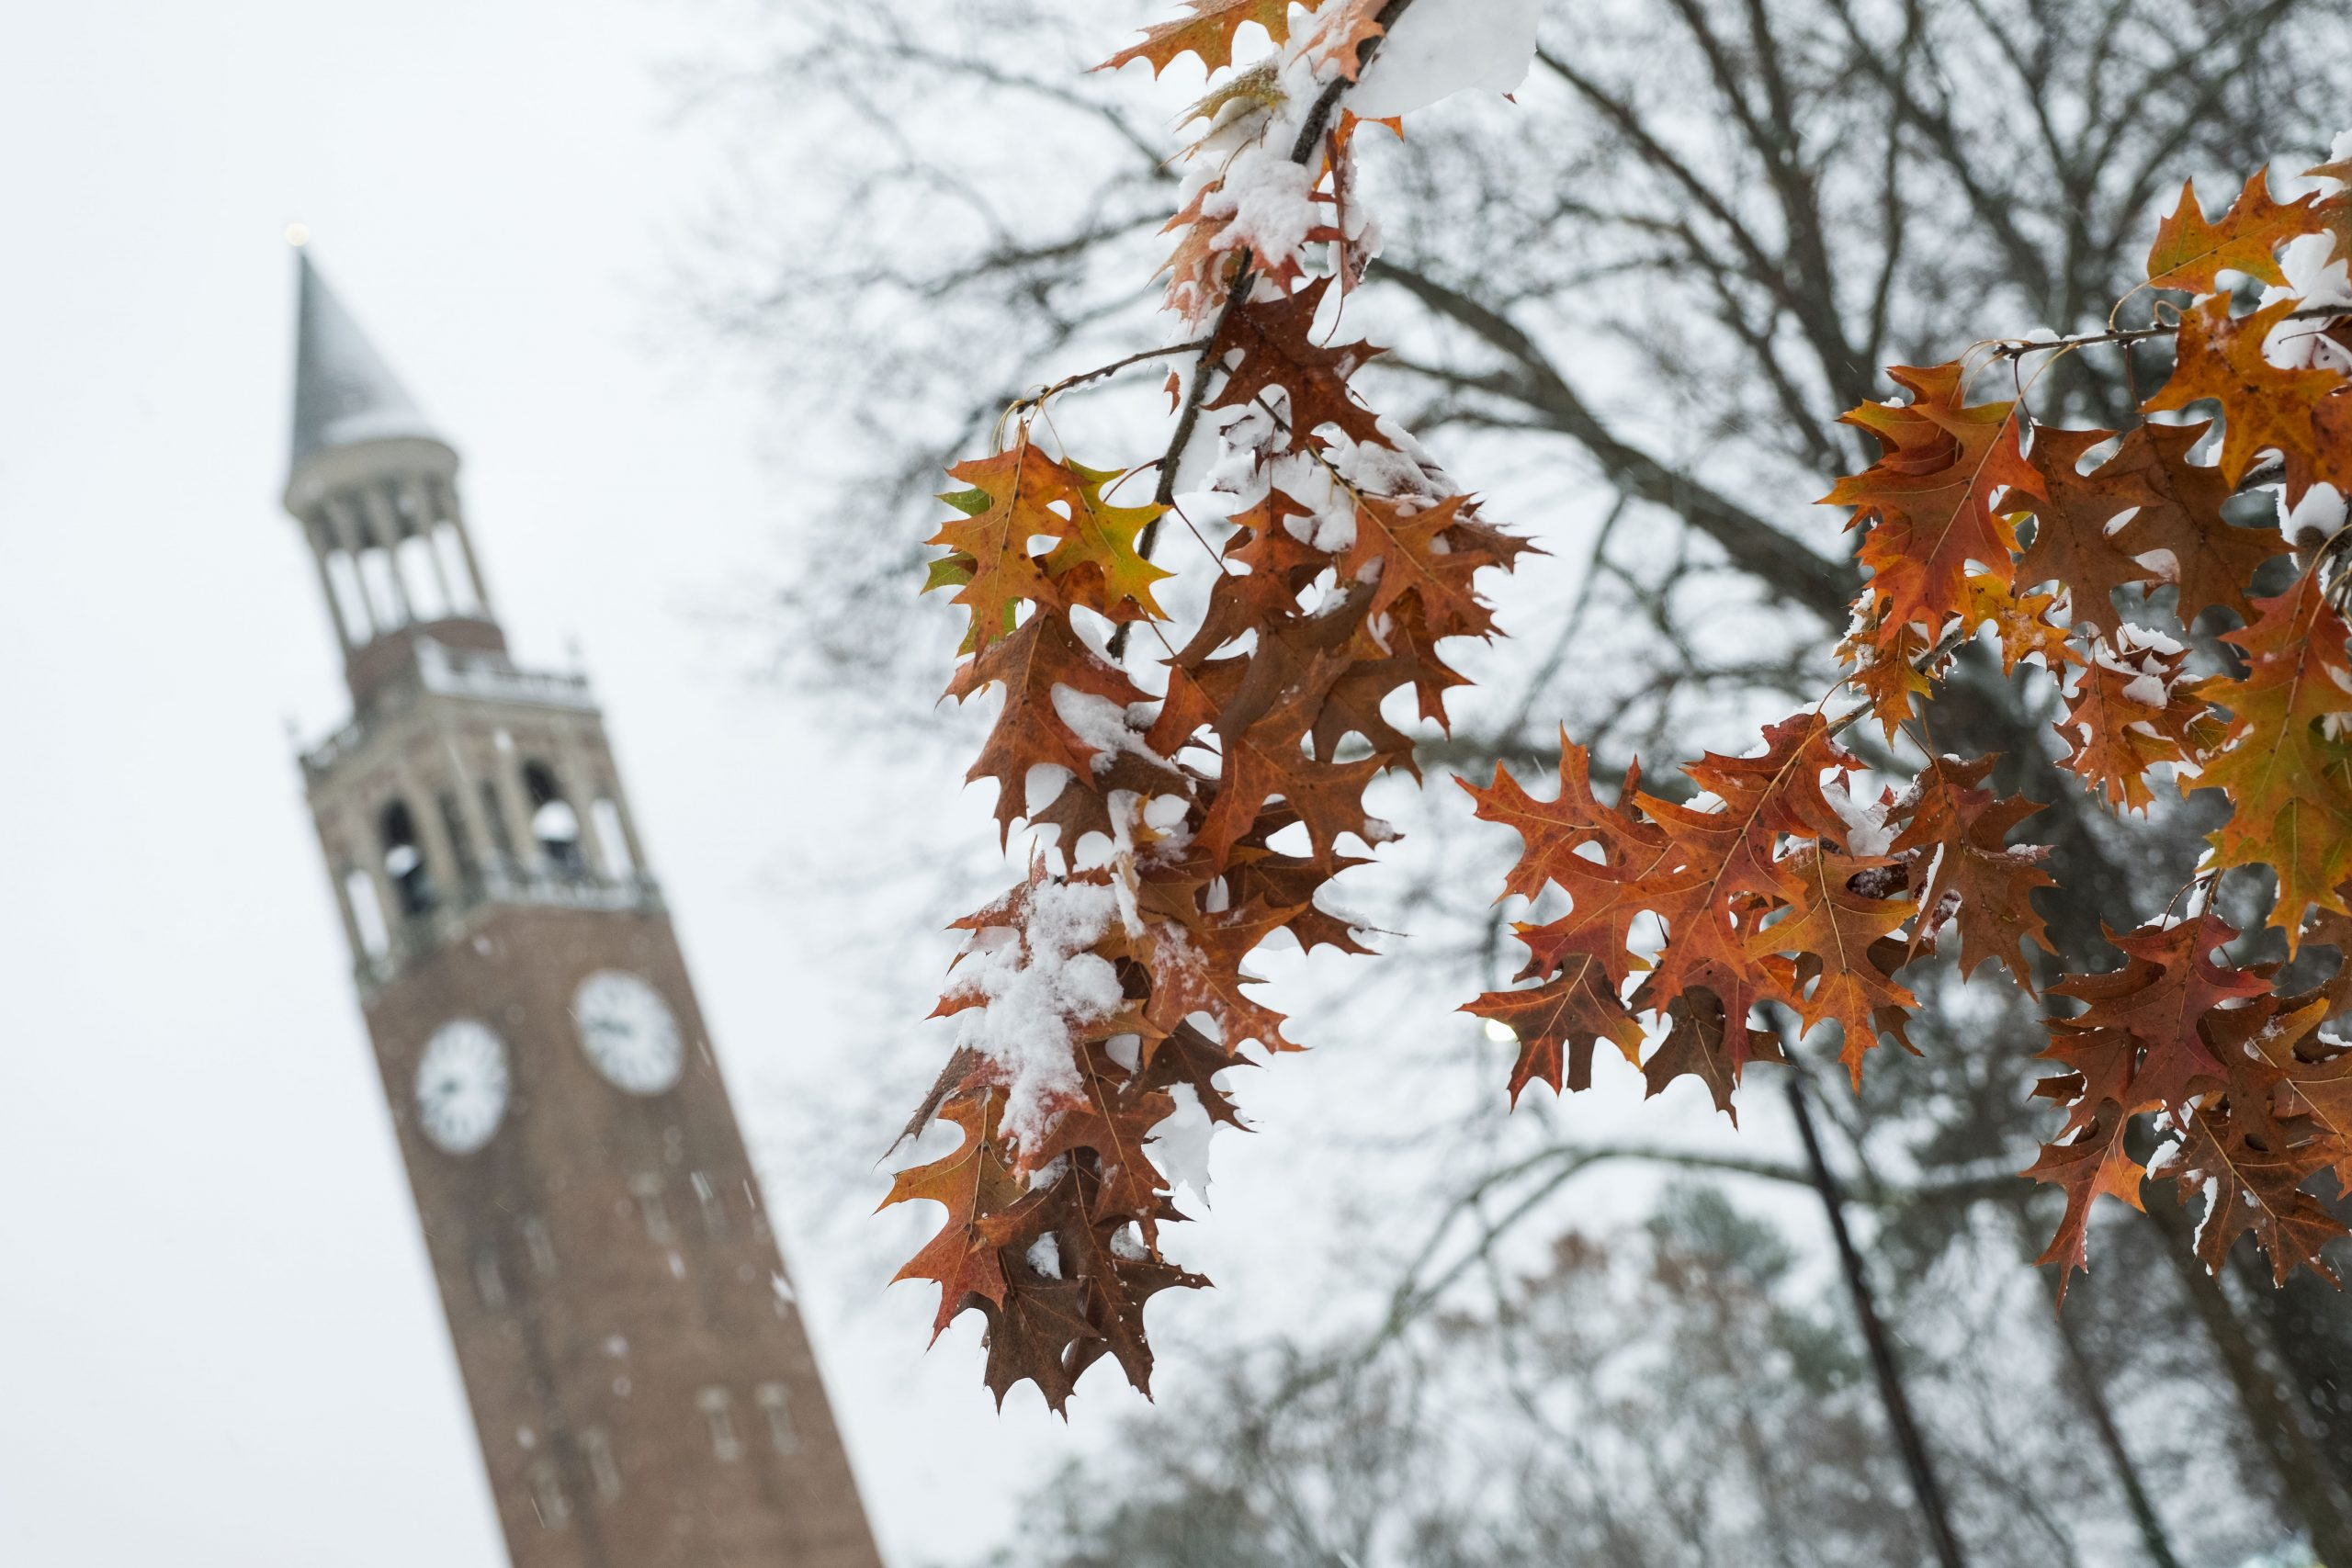 Orange Fall leaves with a little bit of snow on them. The Bell Tower is in the background.